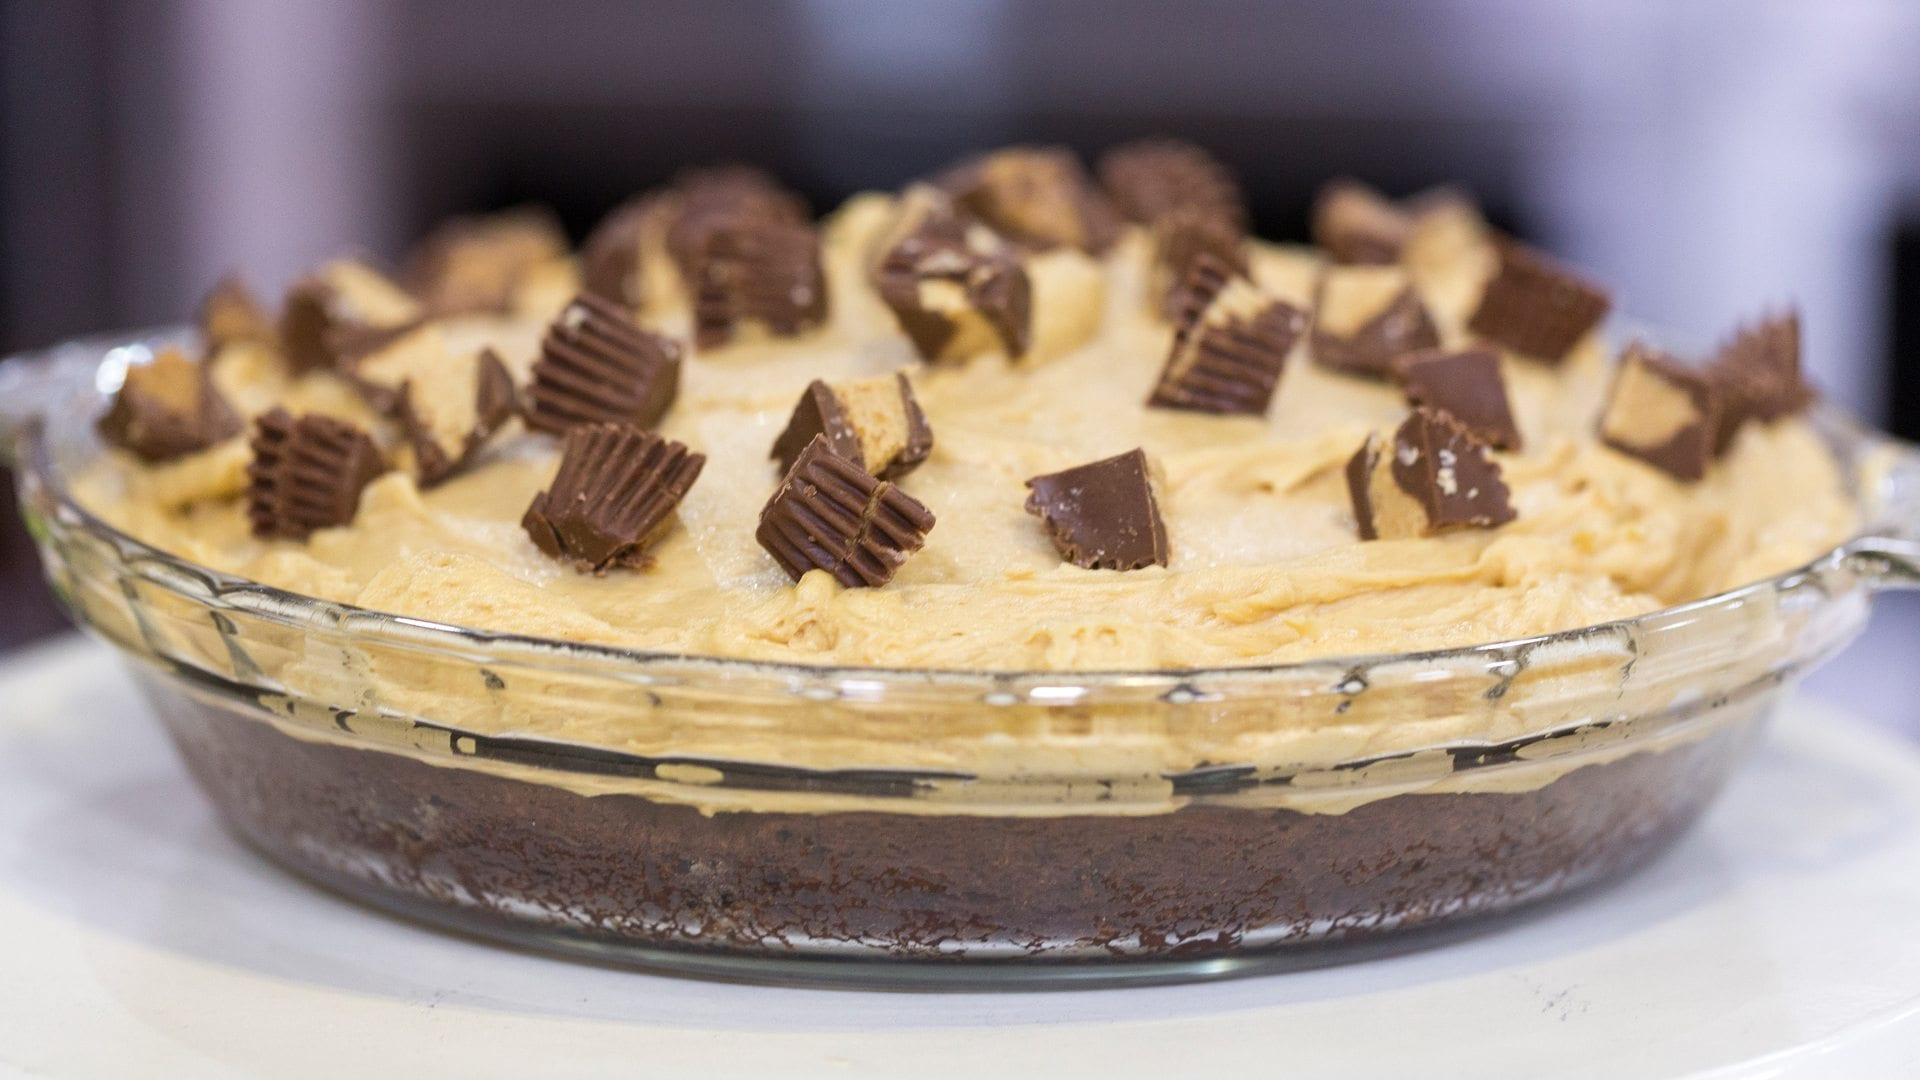 TODAY Show: Brandi Milloy of PopSugar whips up a brownie bottom peanut butter pie on TODAY. -- November 9, 2015